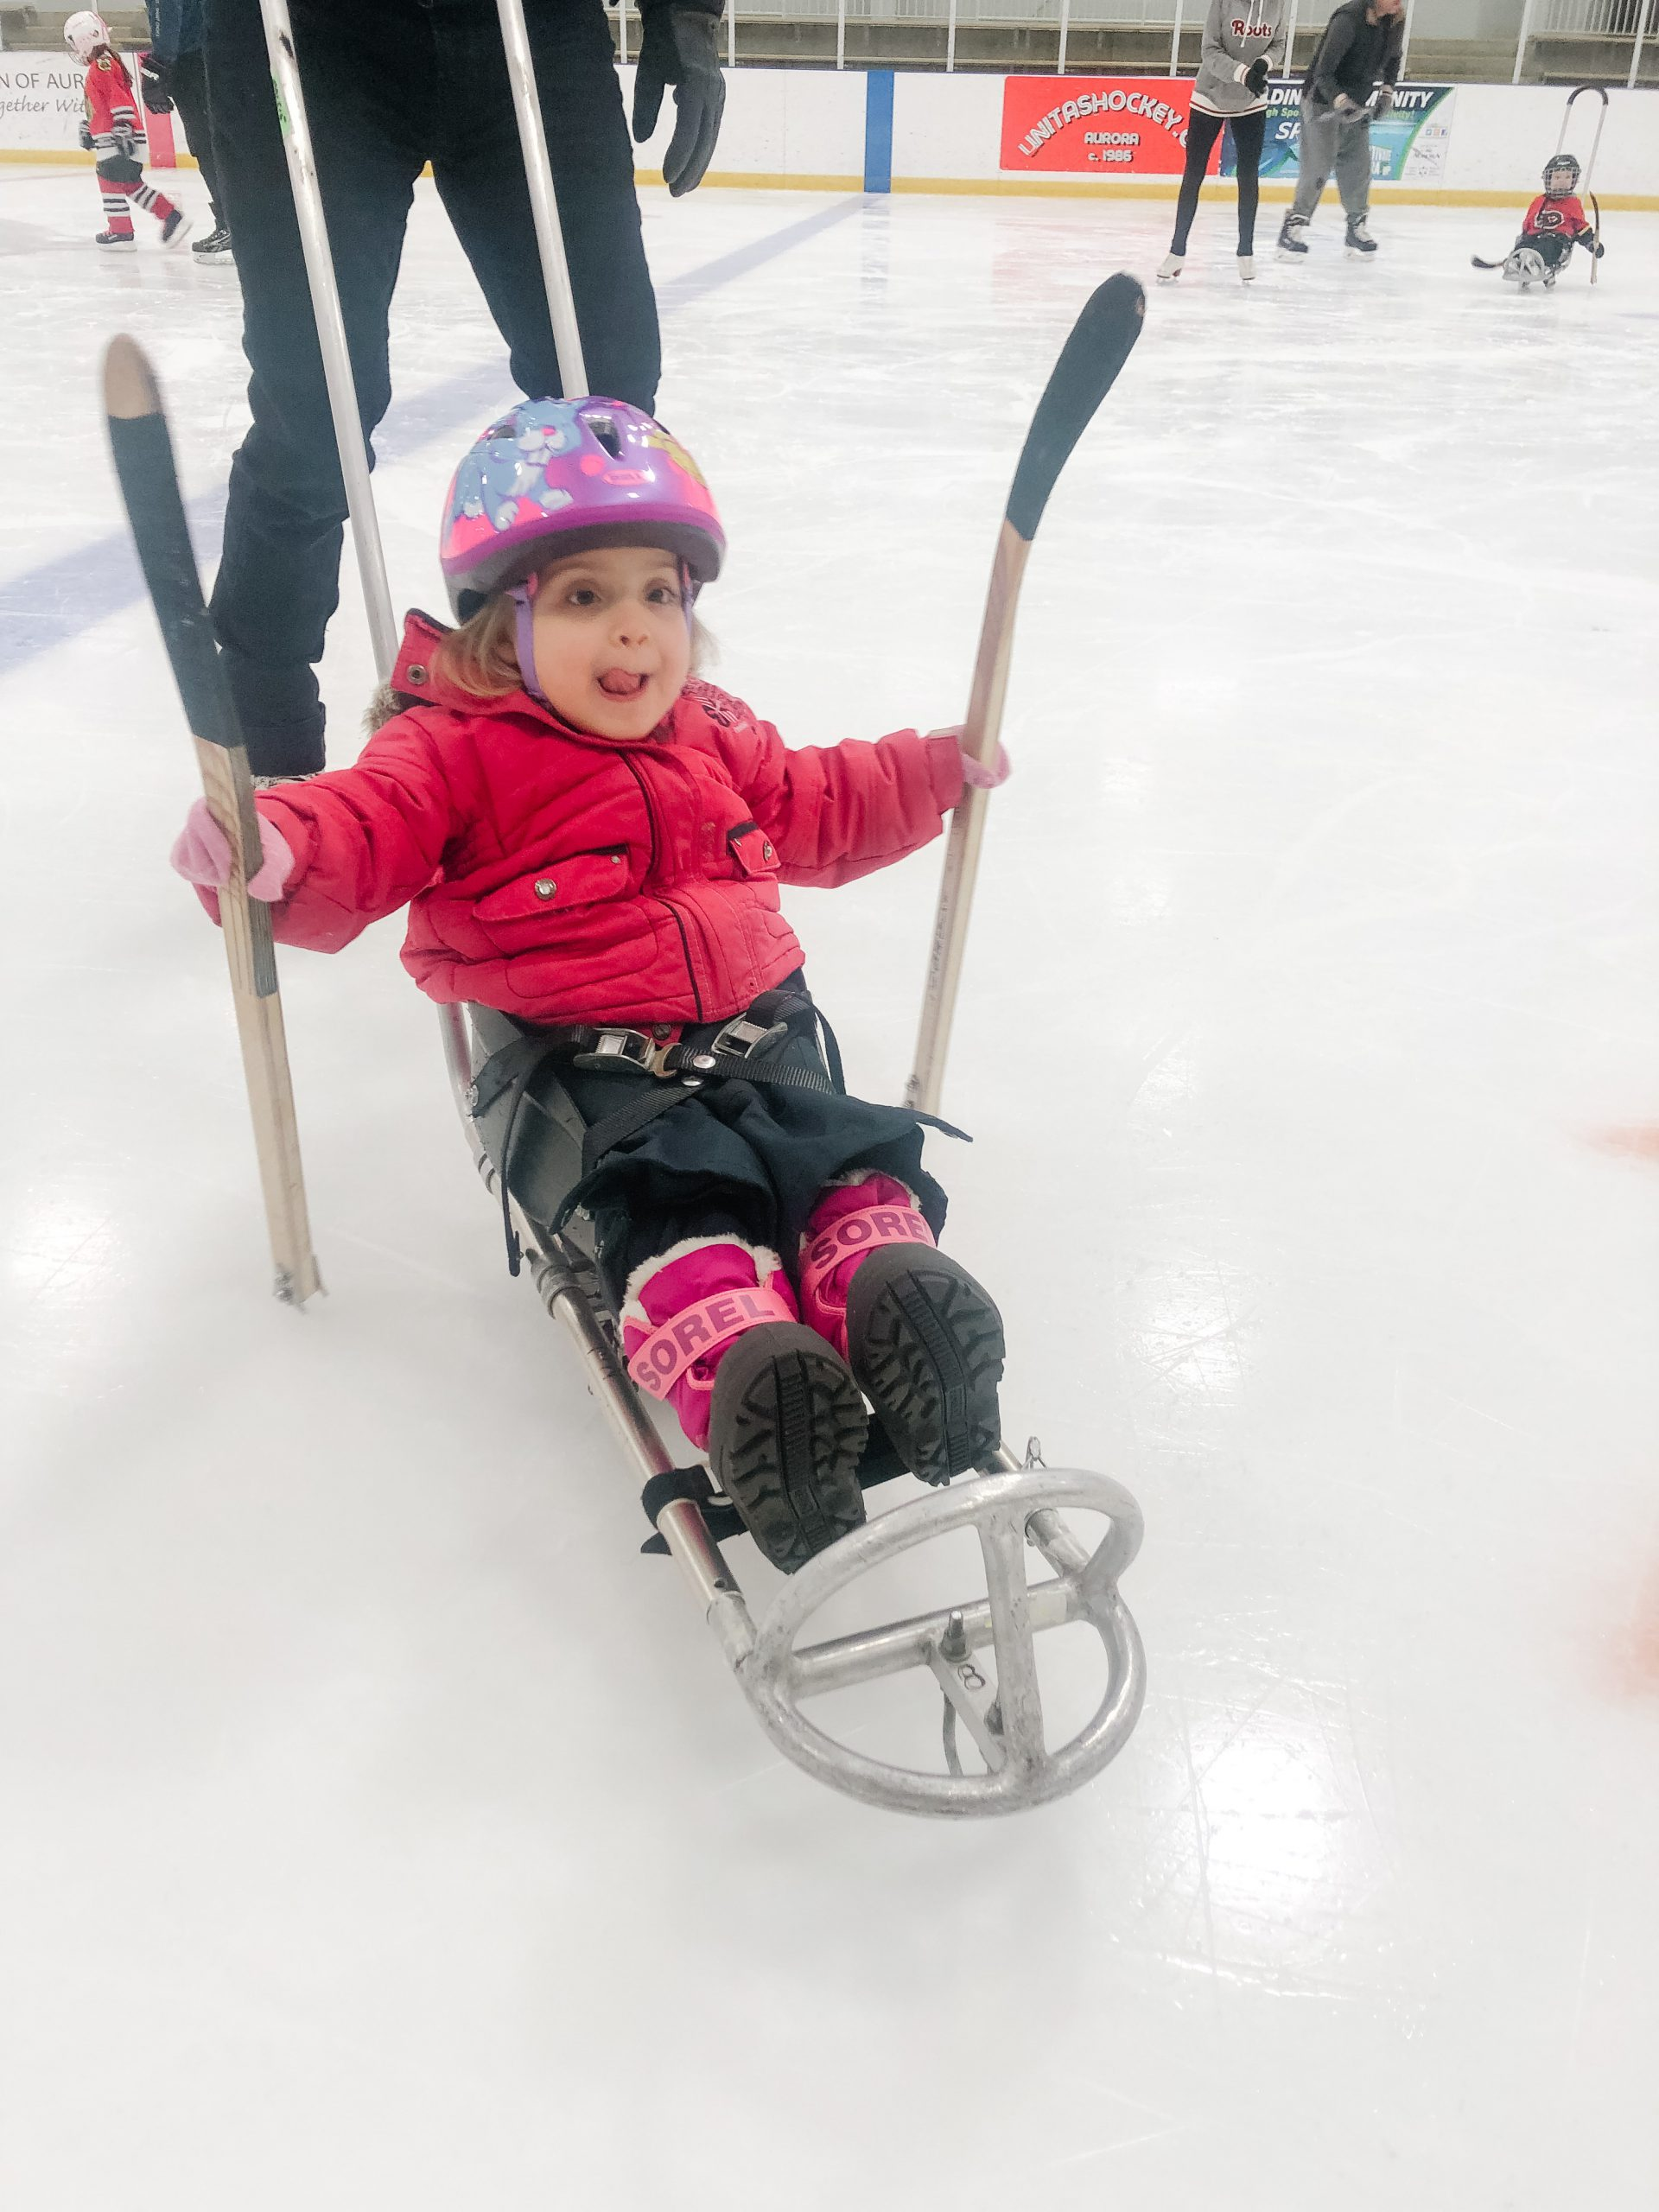 Child playing sledge hockey.